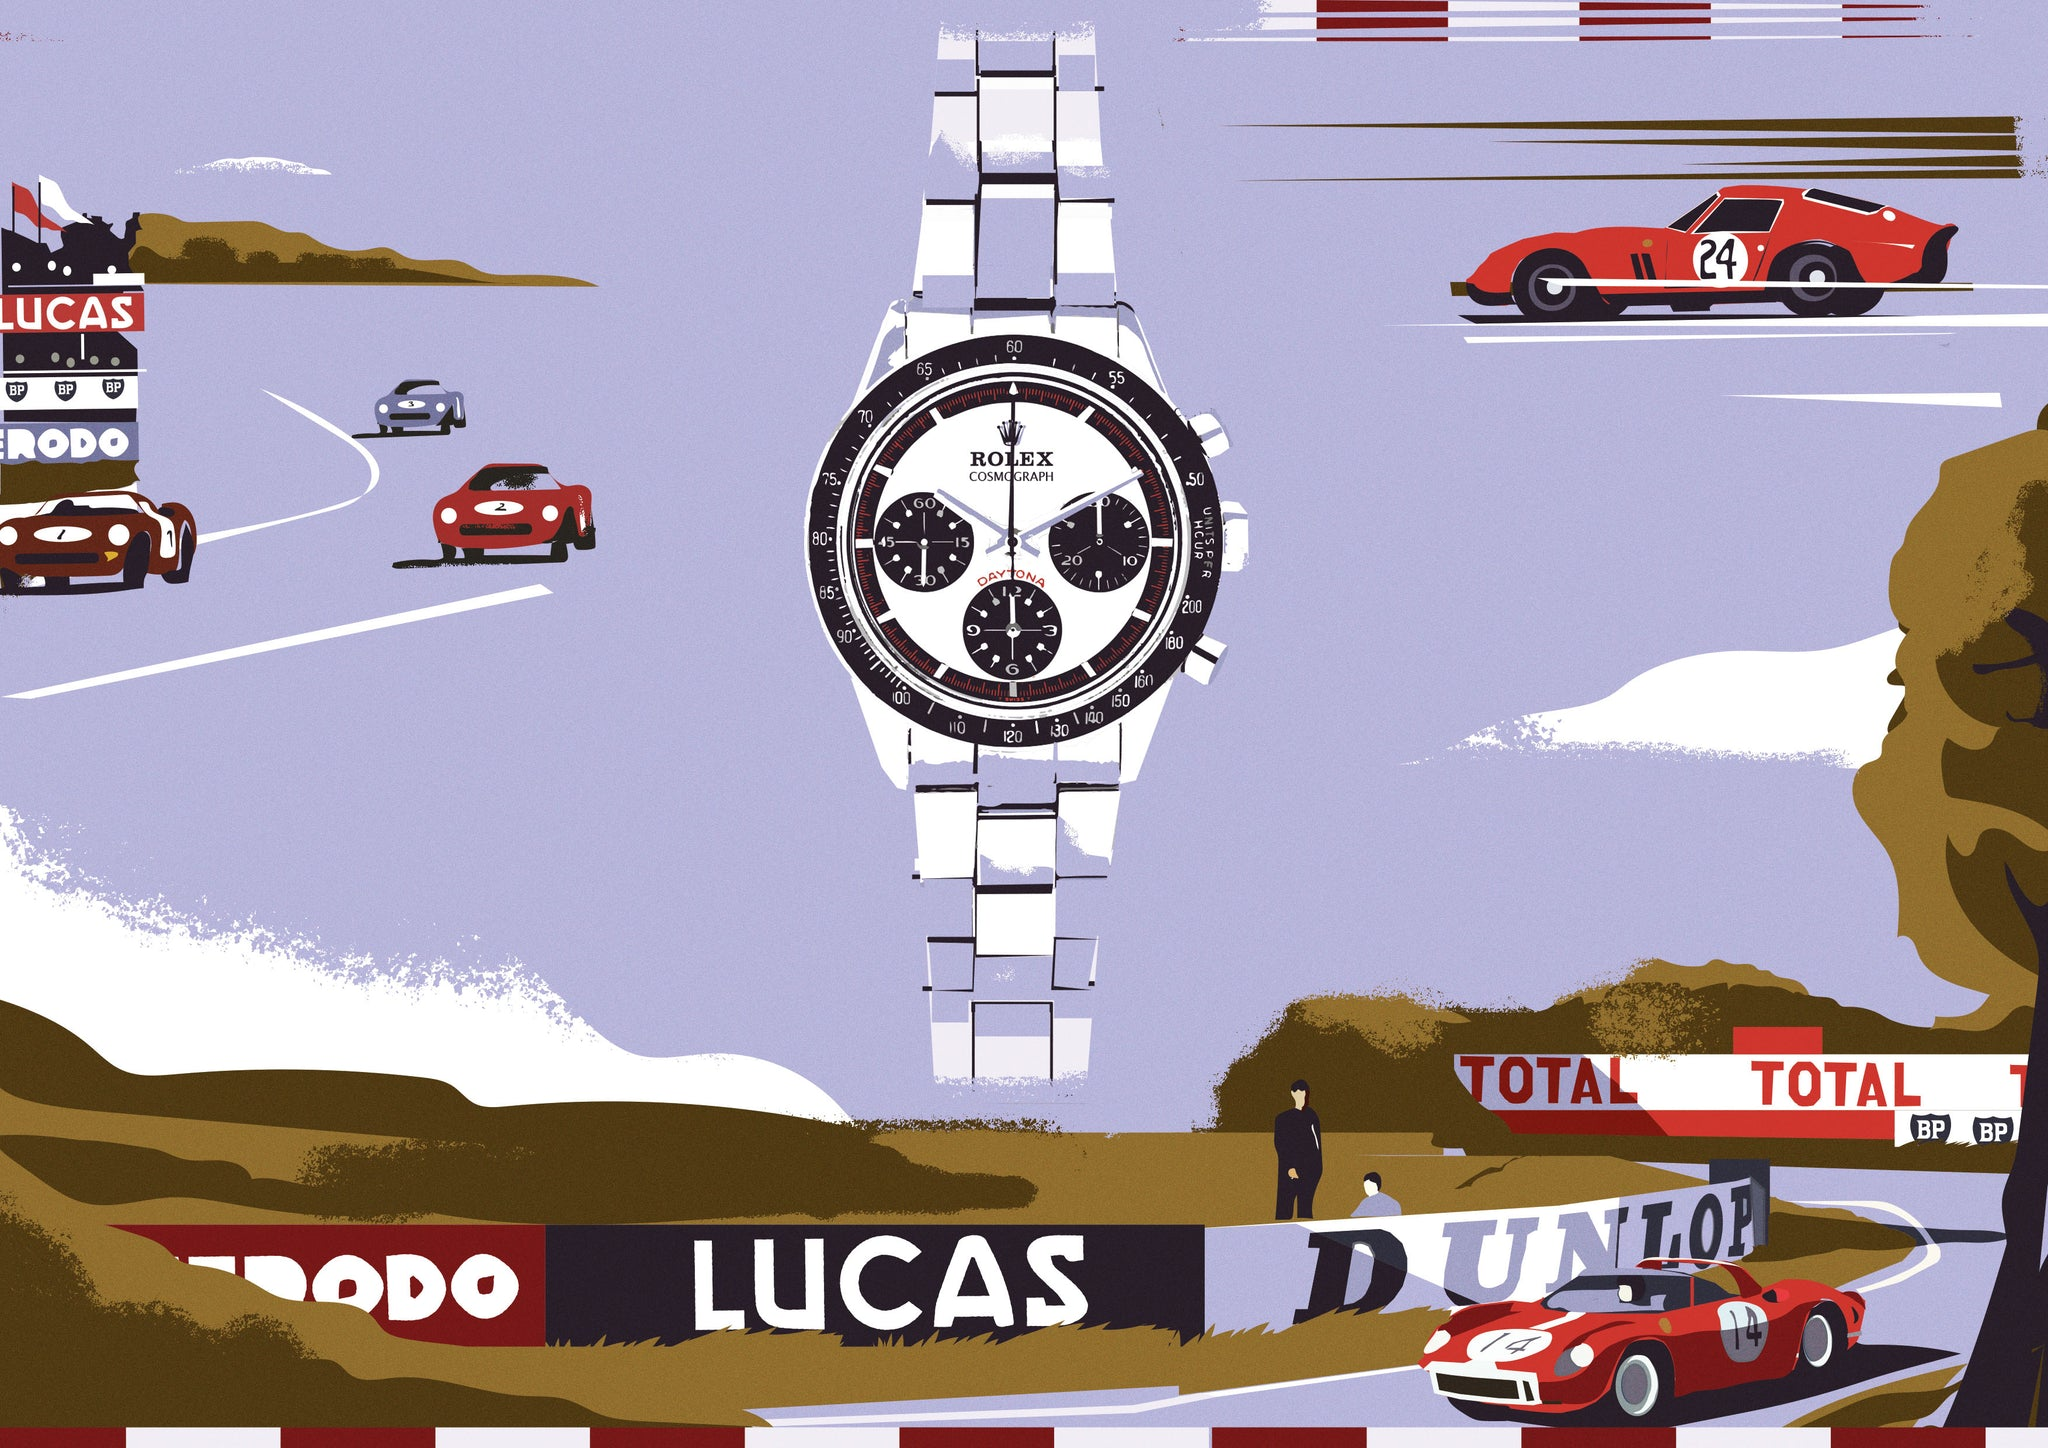 Prints Harry Rolex Daytona illustration with racing cars